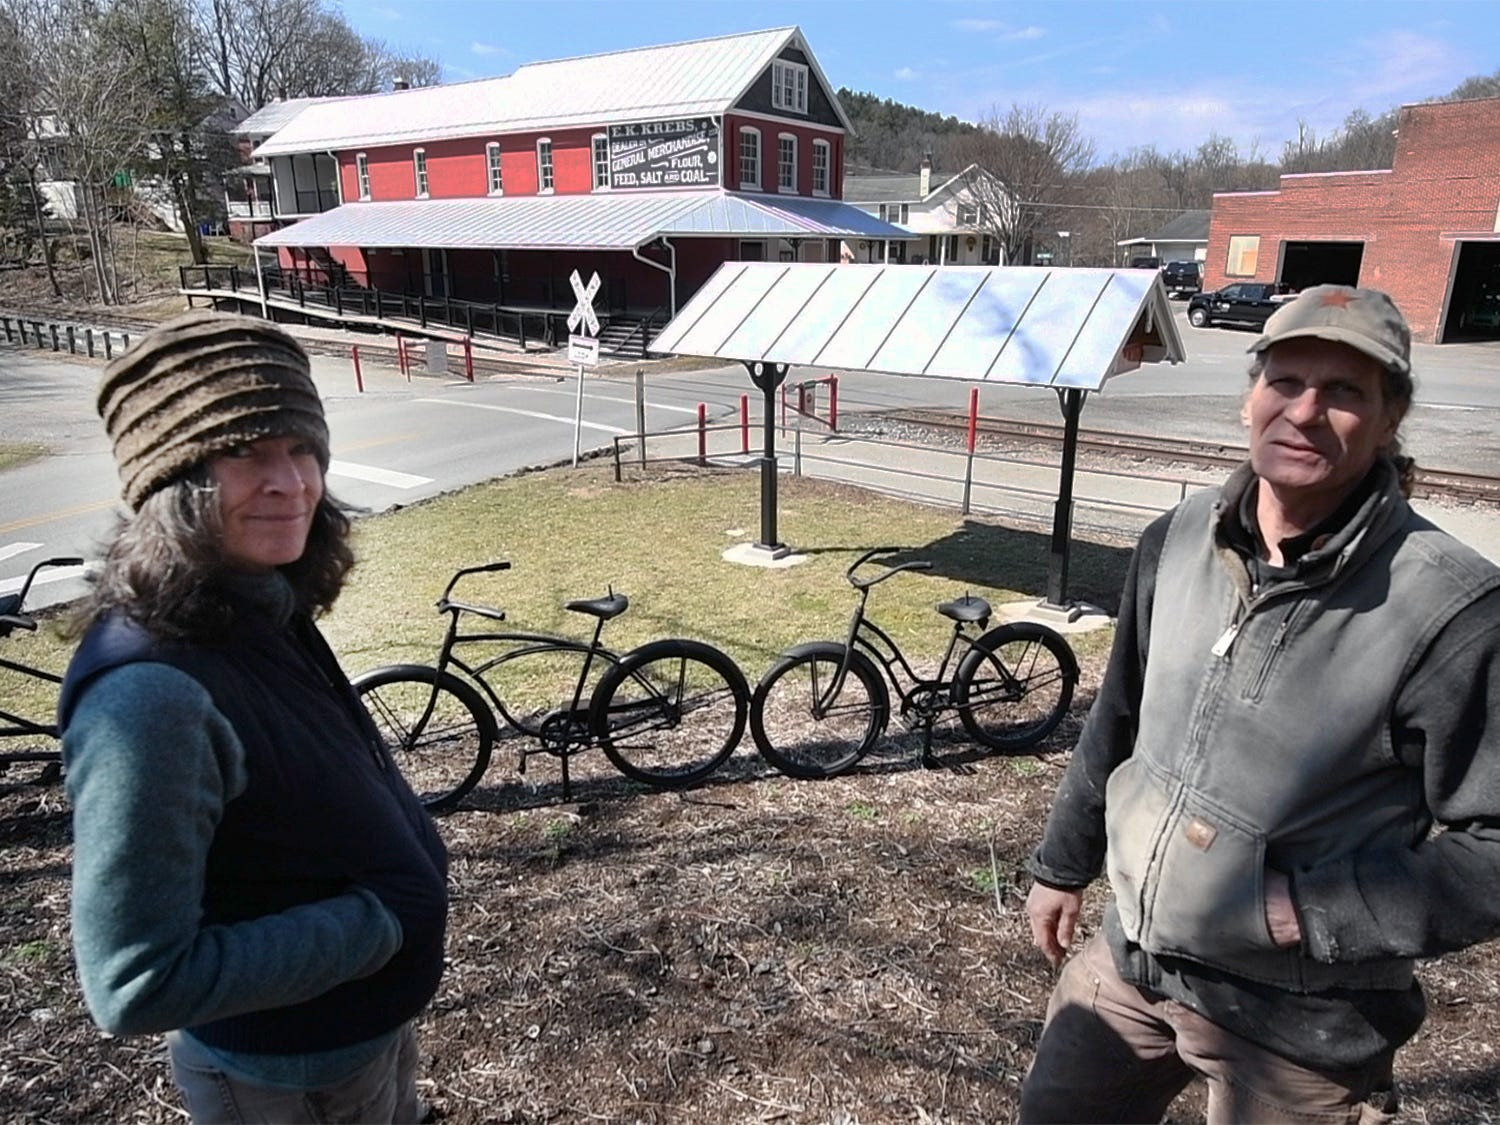 Ellen Darby, left, and David Keller stand with the restorations they have made to Seitzland Village, outside of Glen Rock, behind them. The exterior of the store in the background was restored with new porches, the store front rebuilt and a train station was added. The York County Heritage Rail Trail runs in the background.